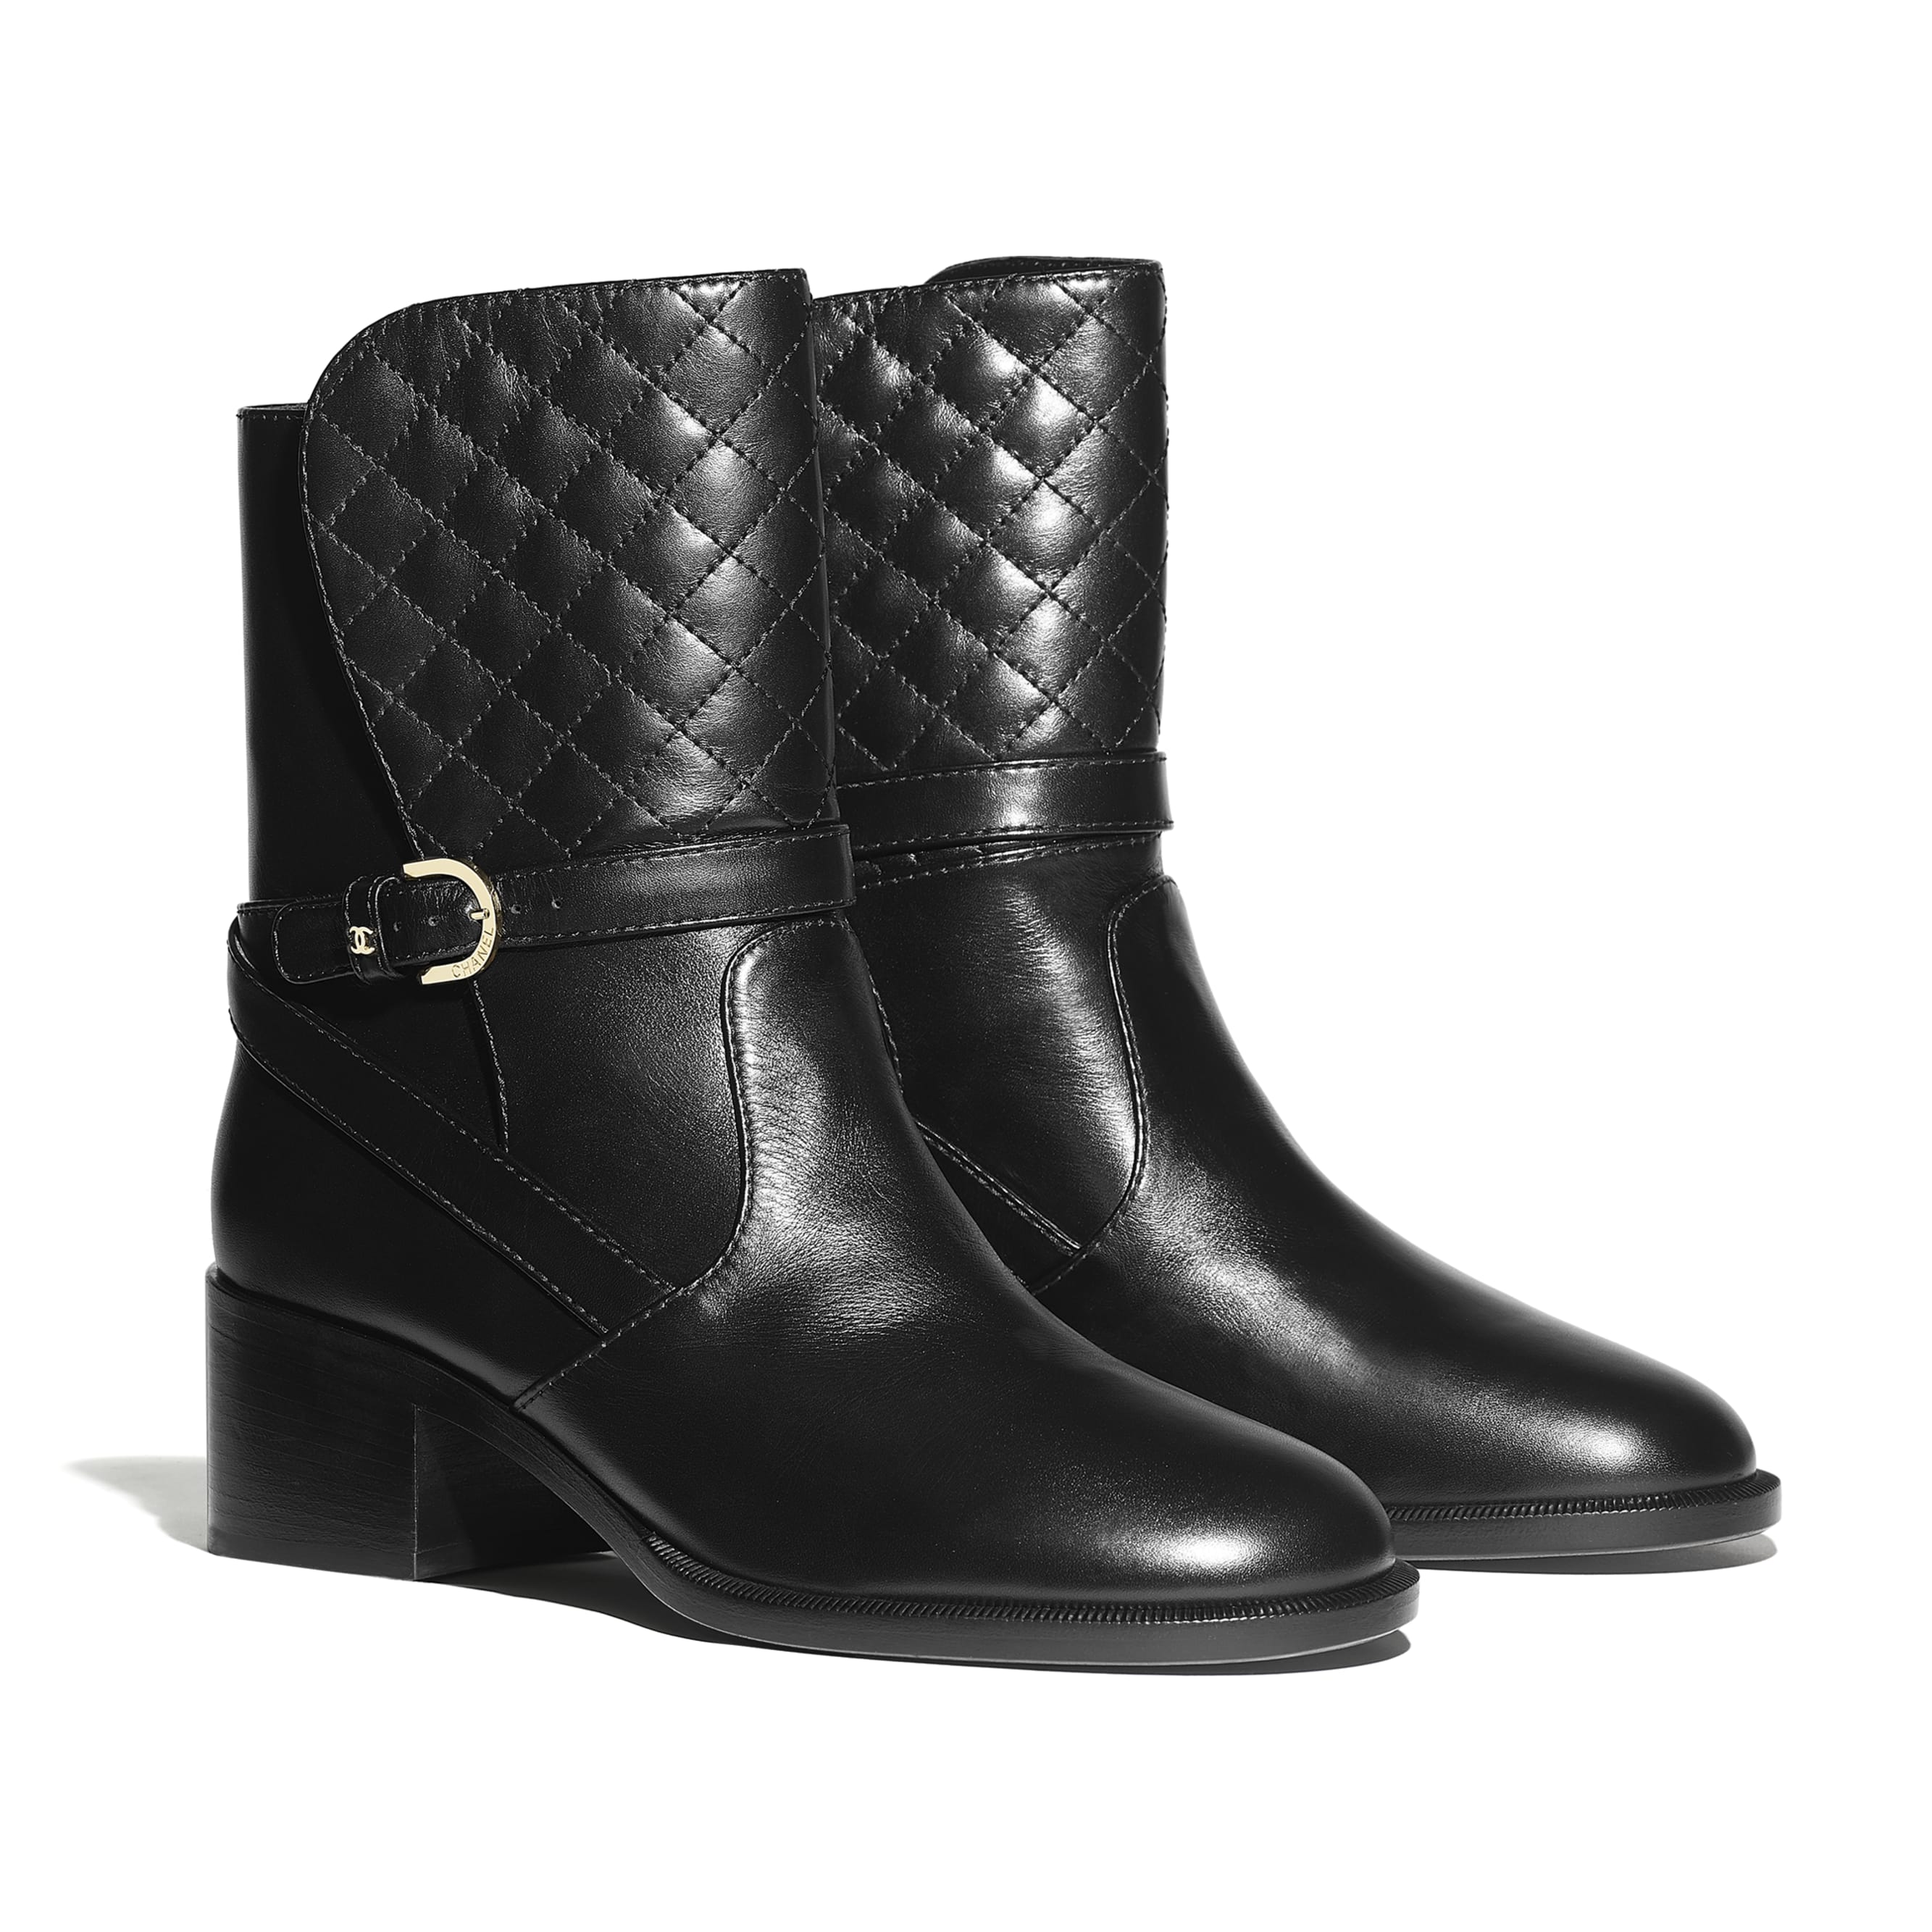 Ankle Boots - Black - Calfskin - Alternative view - see standard sized version